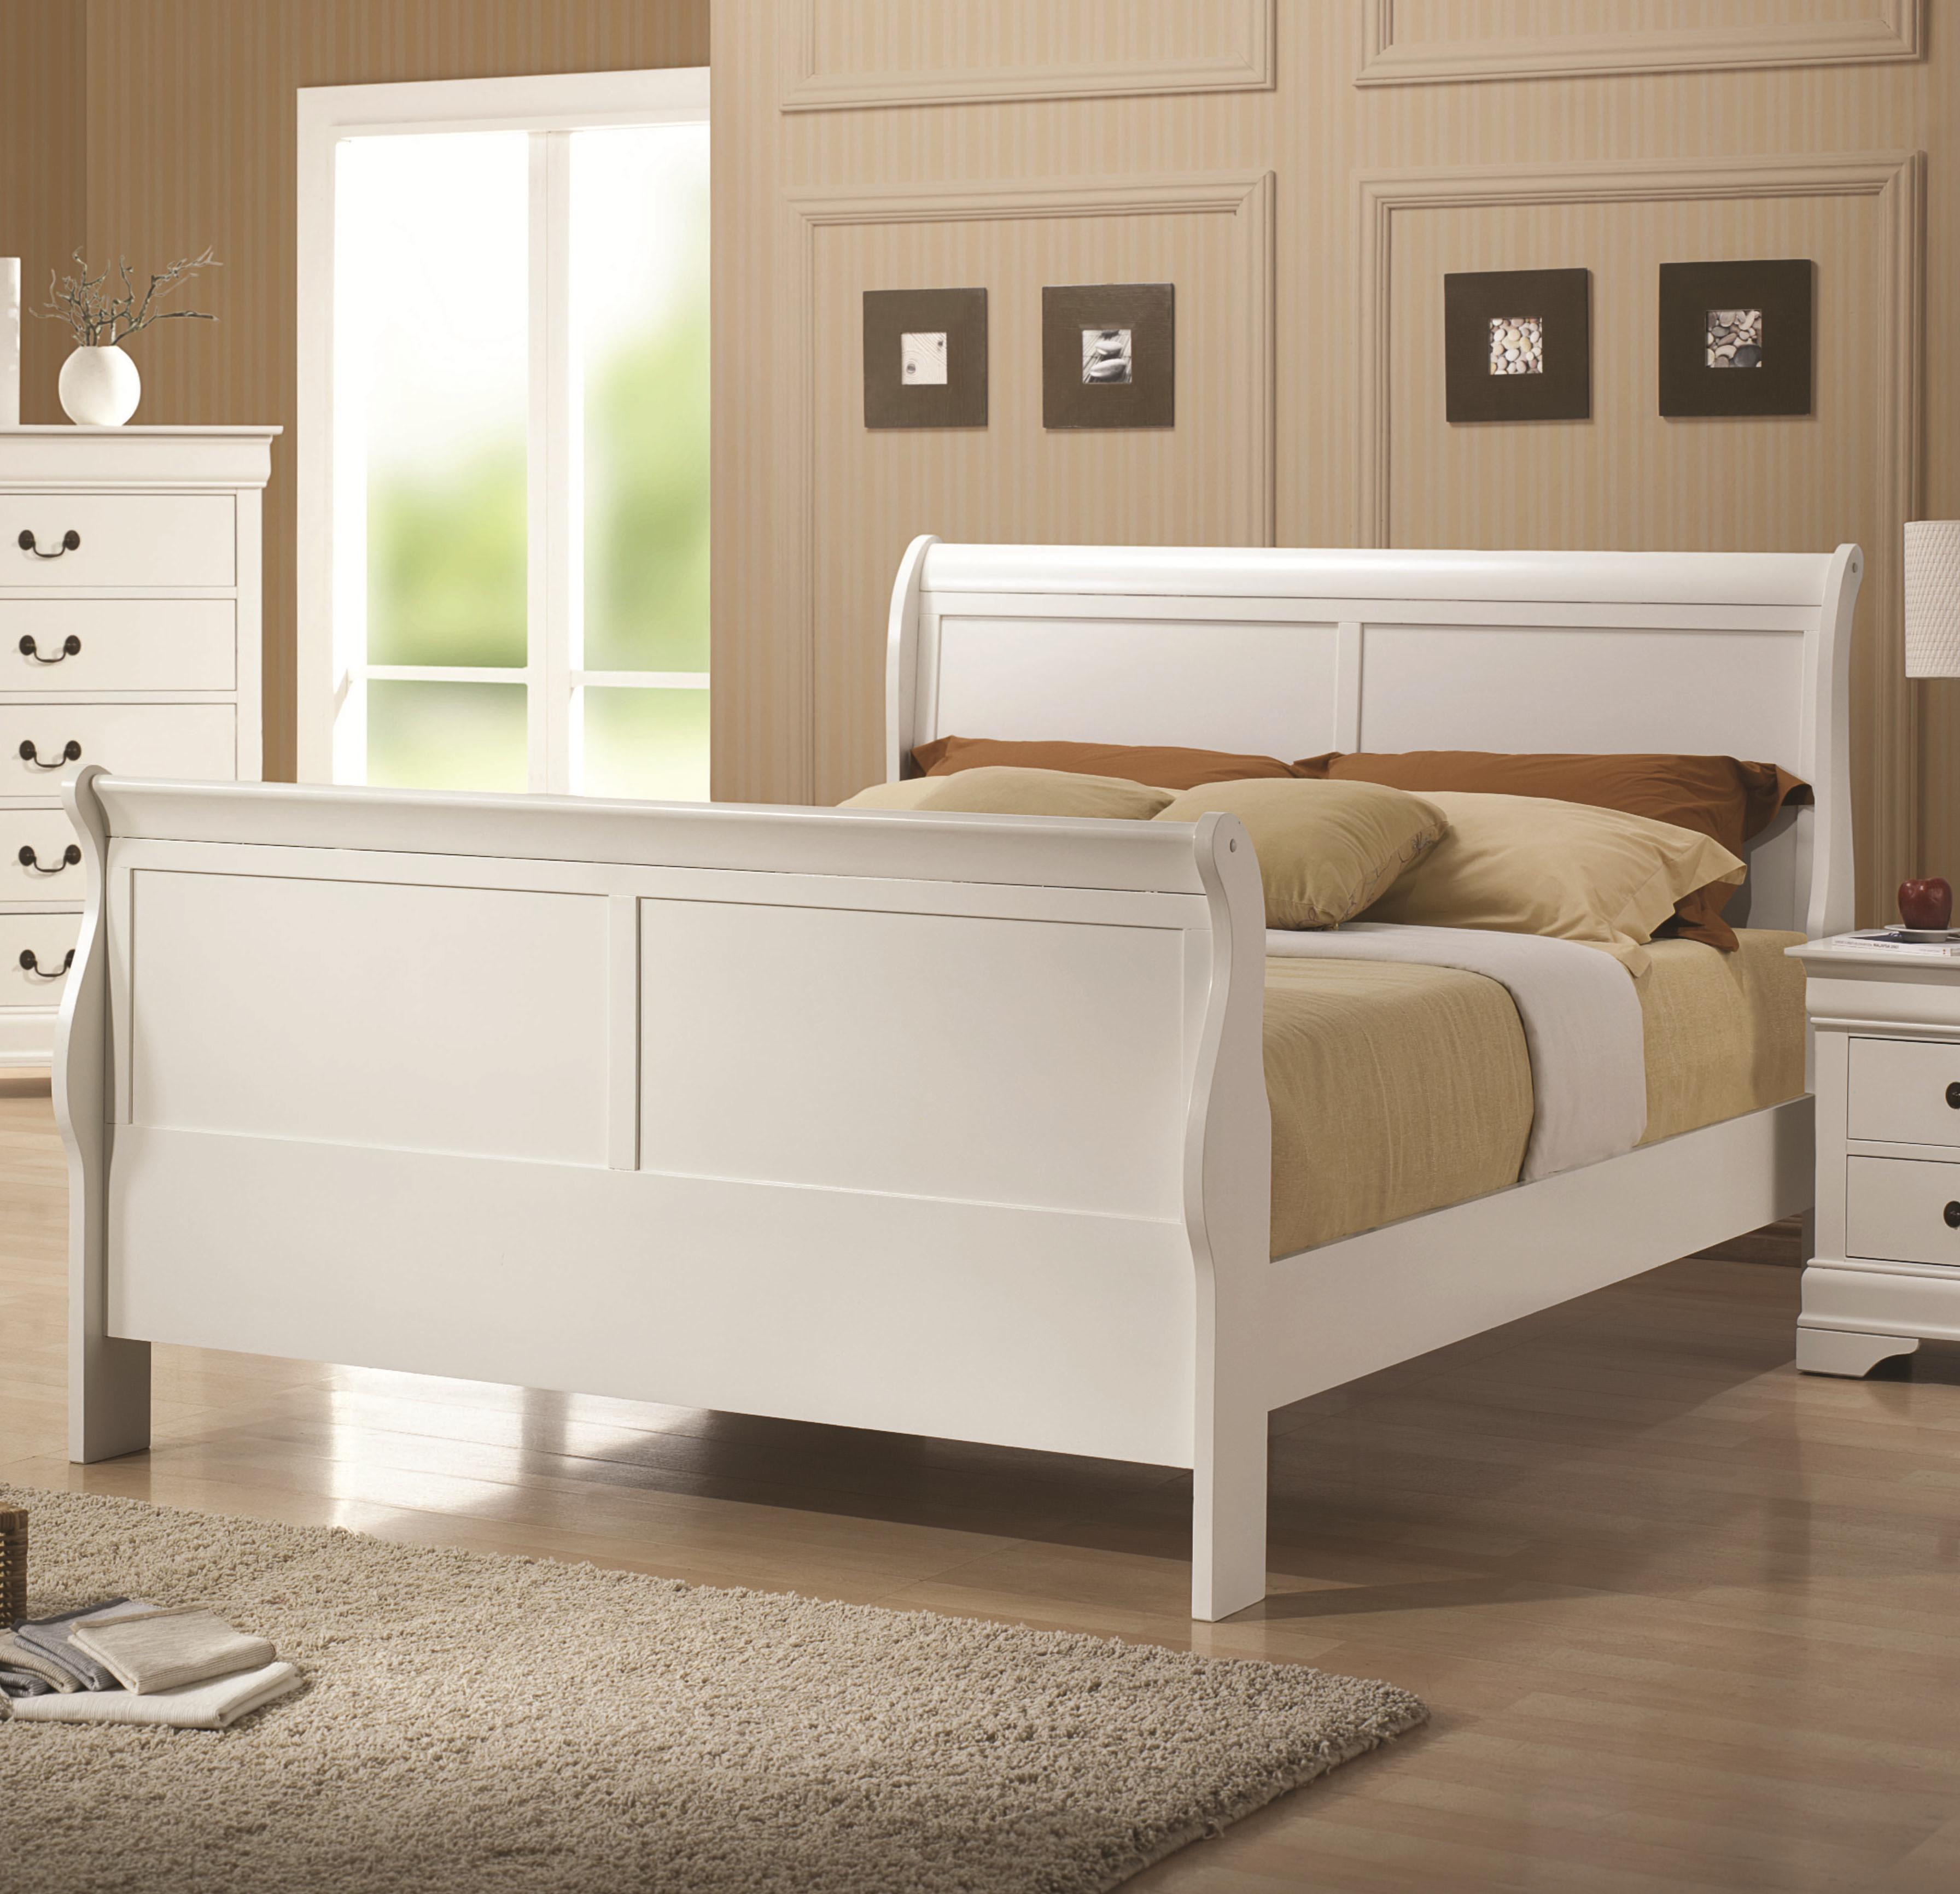 c intercon mis bed twelve oak size products item park drawers mission storage number op with queen br